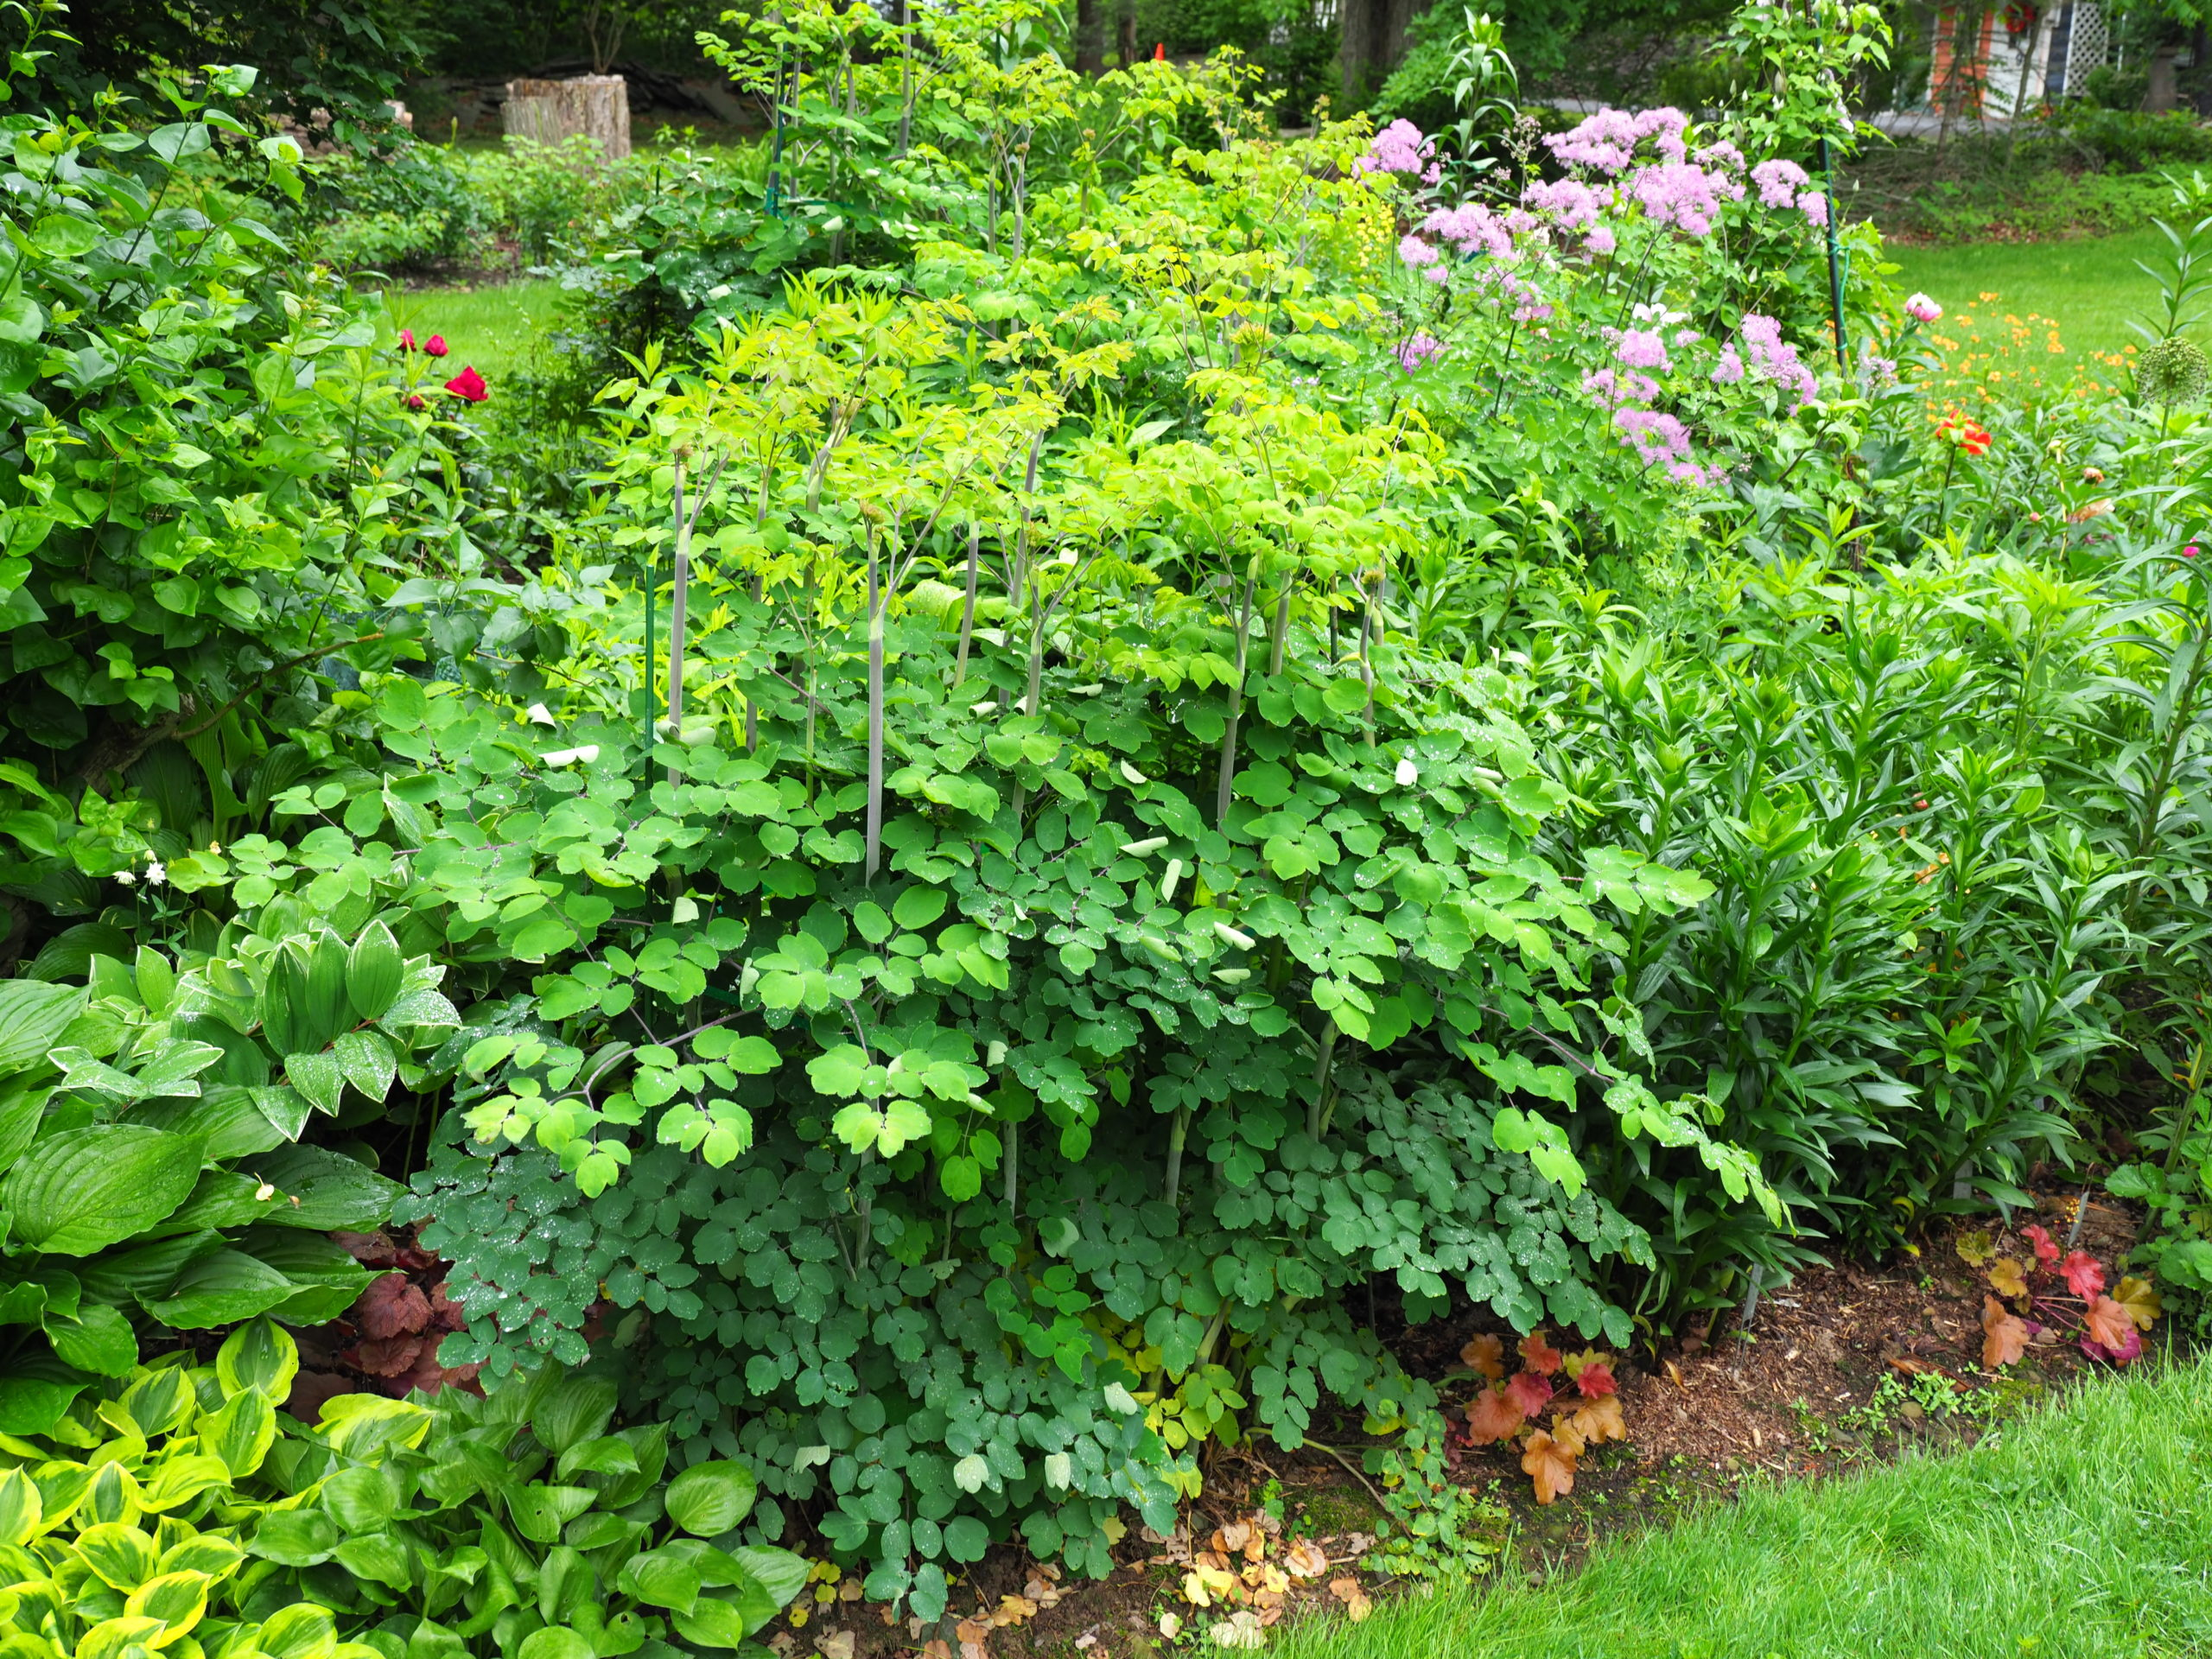 The plants in the front (center) are a variety of thalictrum that will grow to about 6 feet tall.  In the picture, they are only three feet tall but well staked and tied. Look carefully to the right side of the last stem and you'll see one Takiron stake above the foliage.